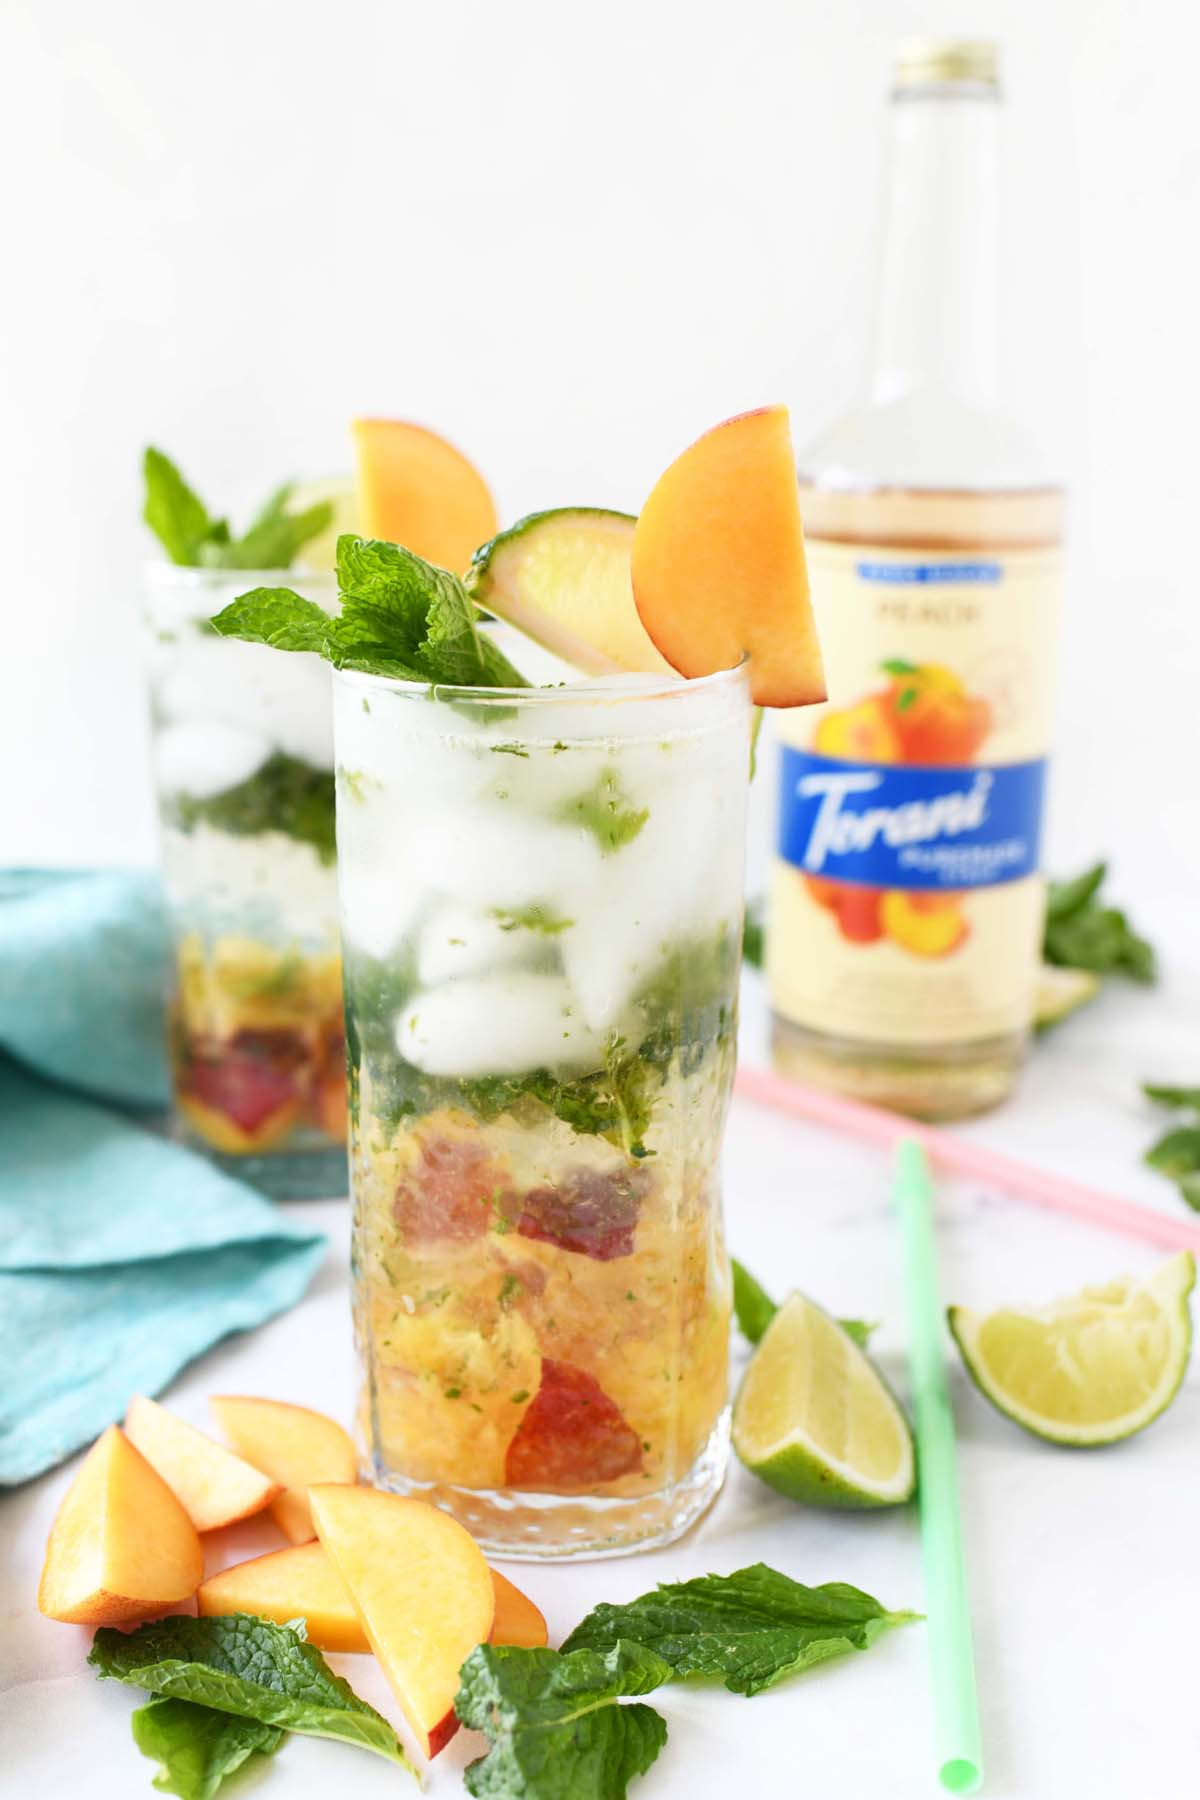 Peachy mint mojito in a tall glass.